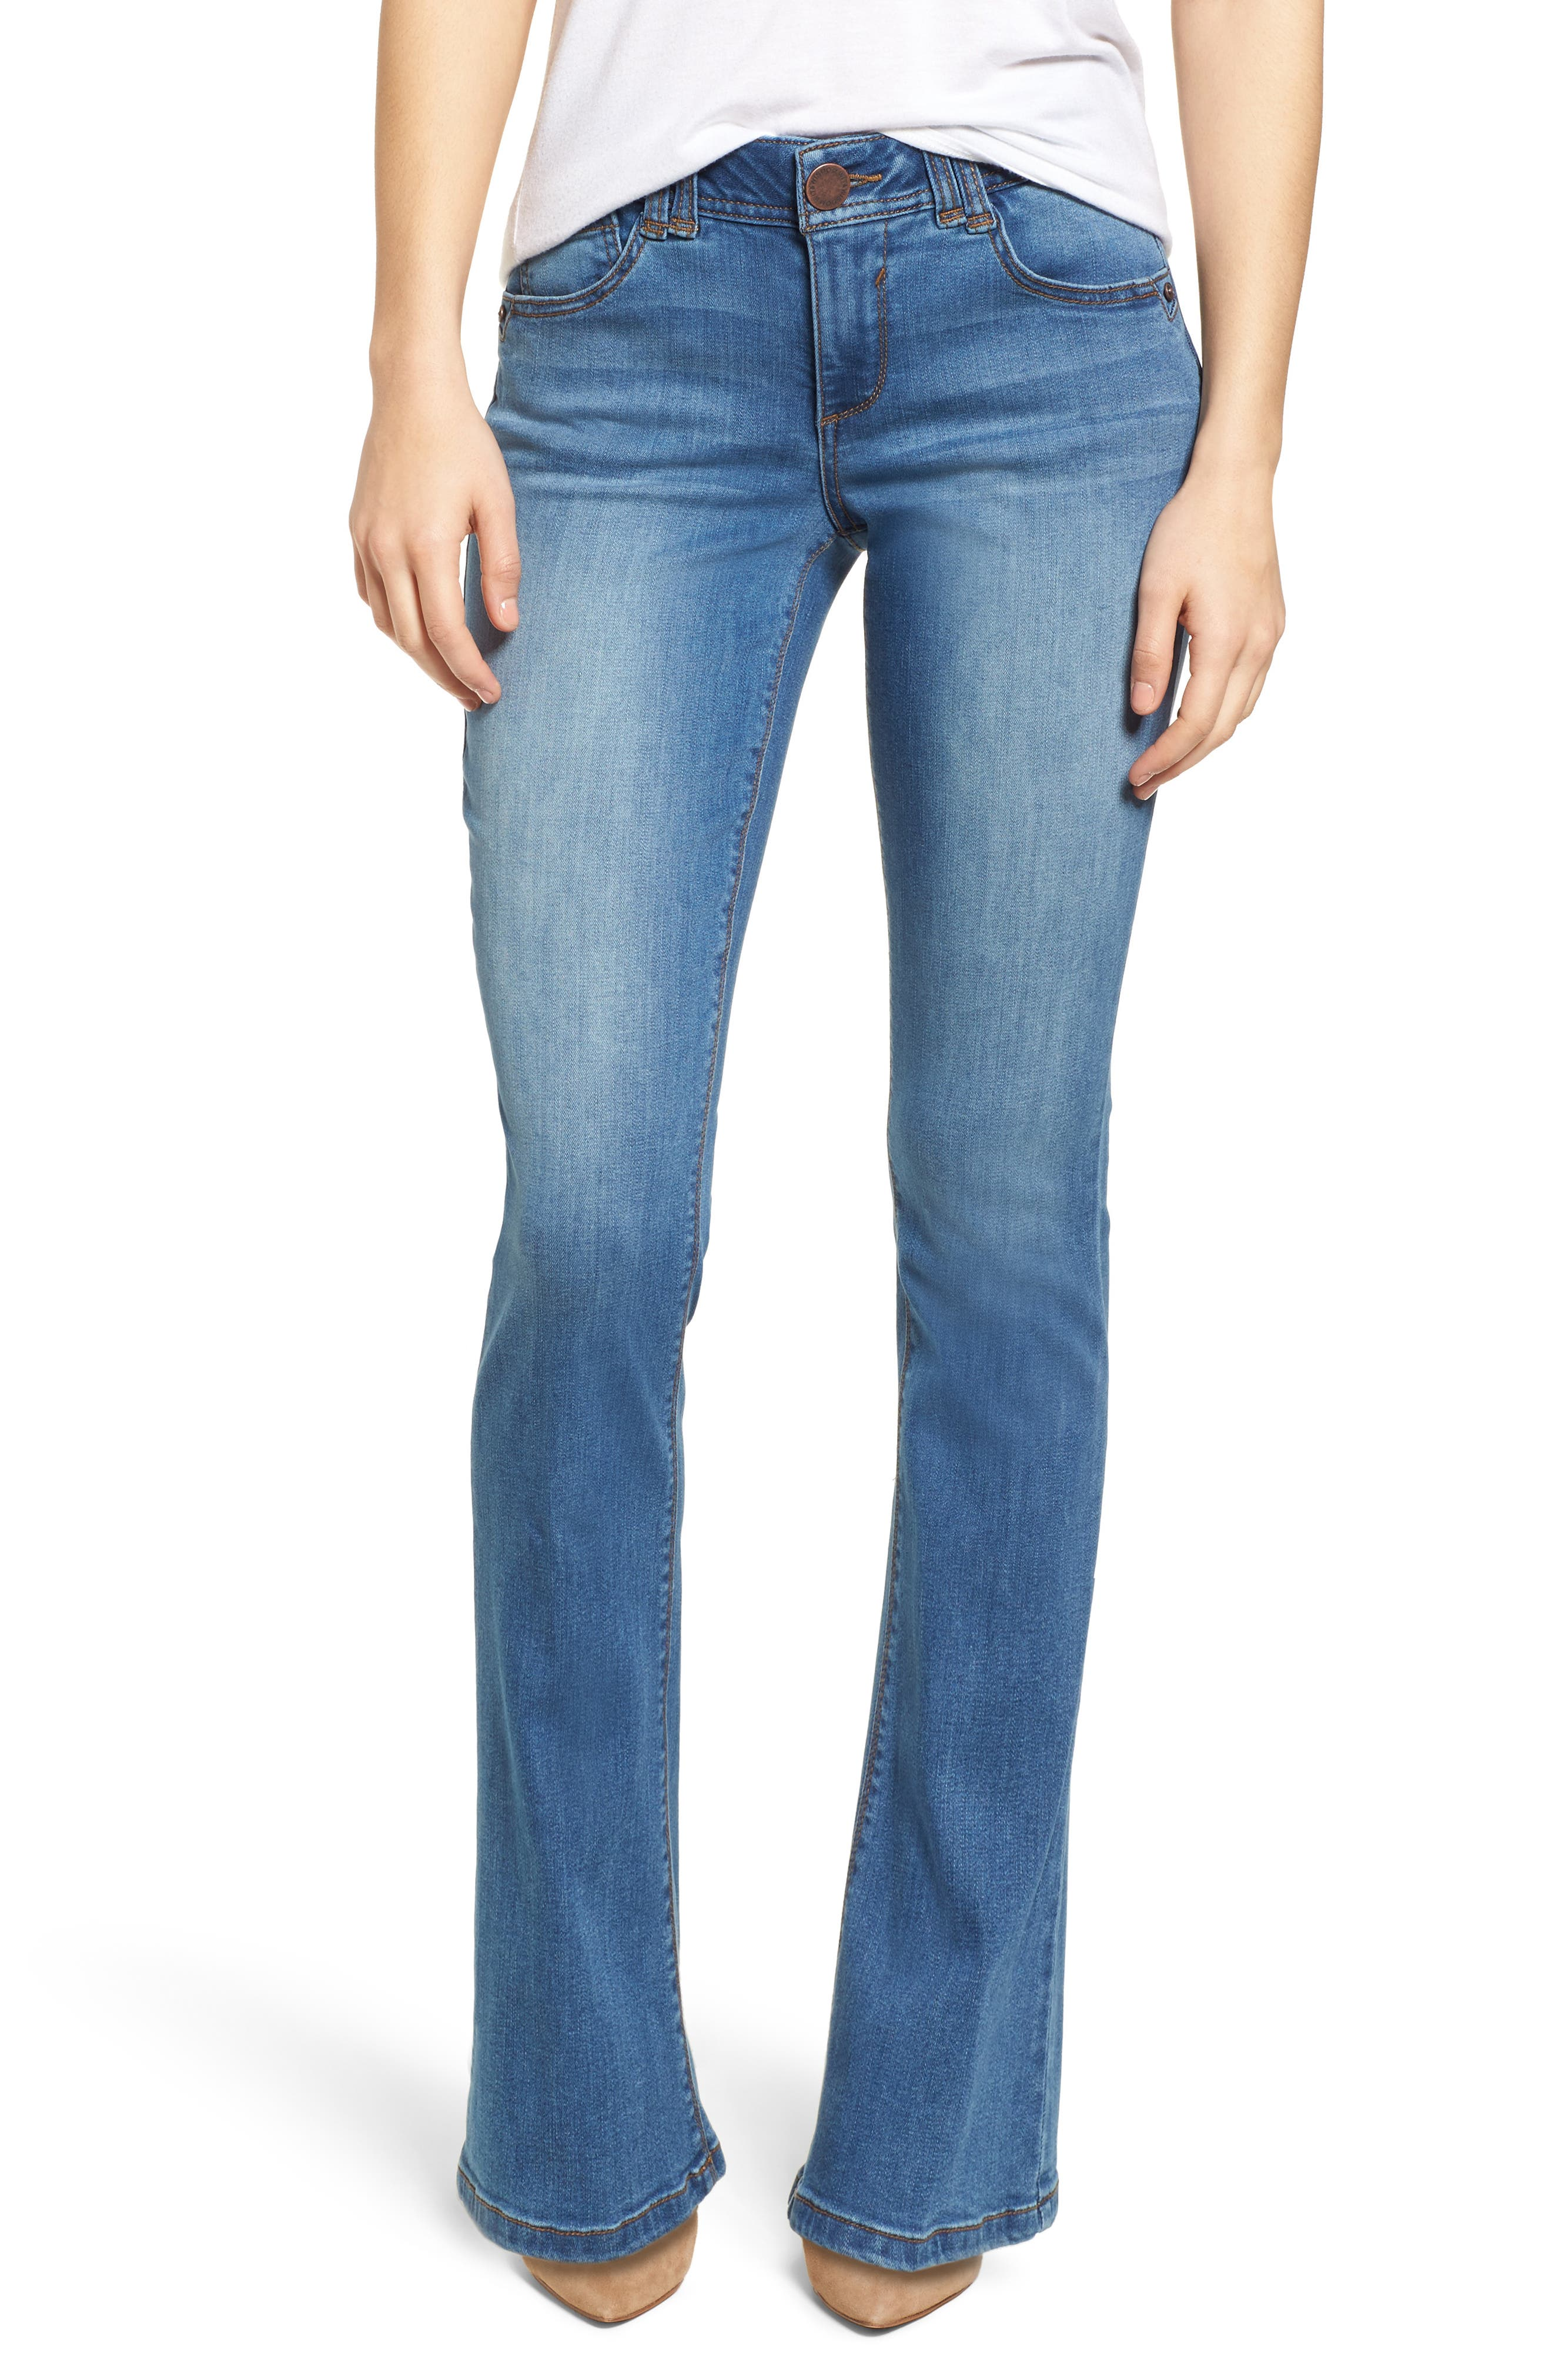 Ab-solution Itty Bitty Bootcut Jeans WIT & WISDOM $78